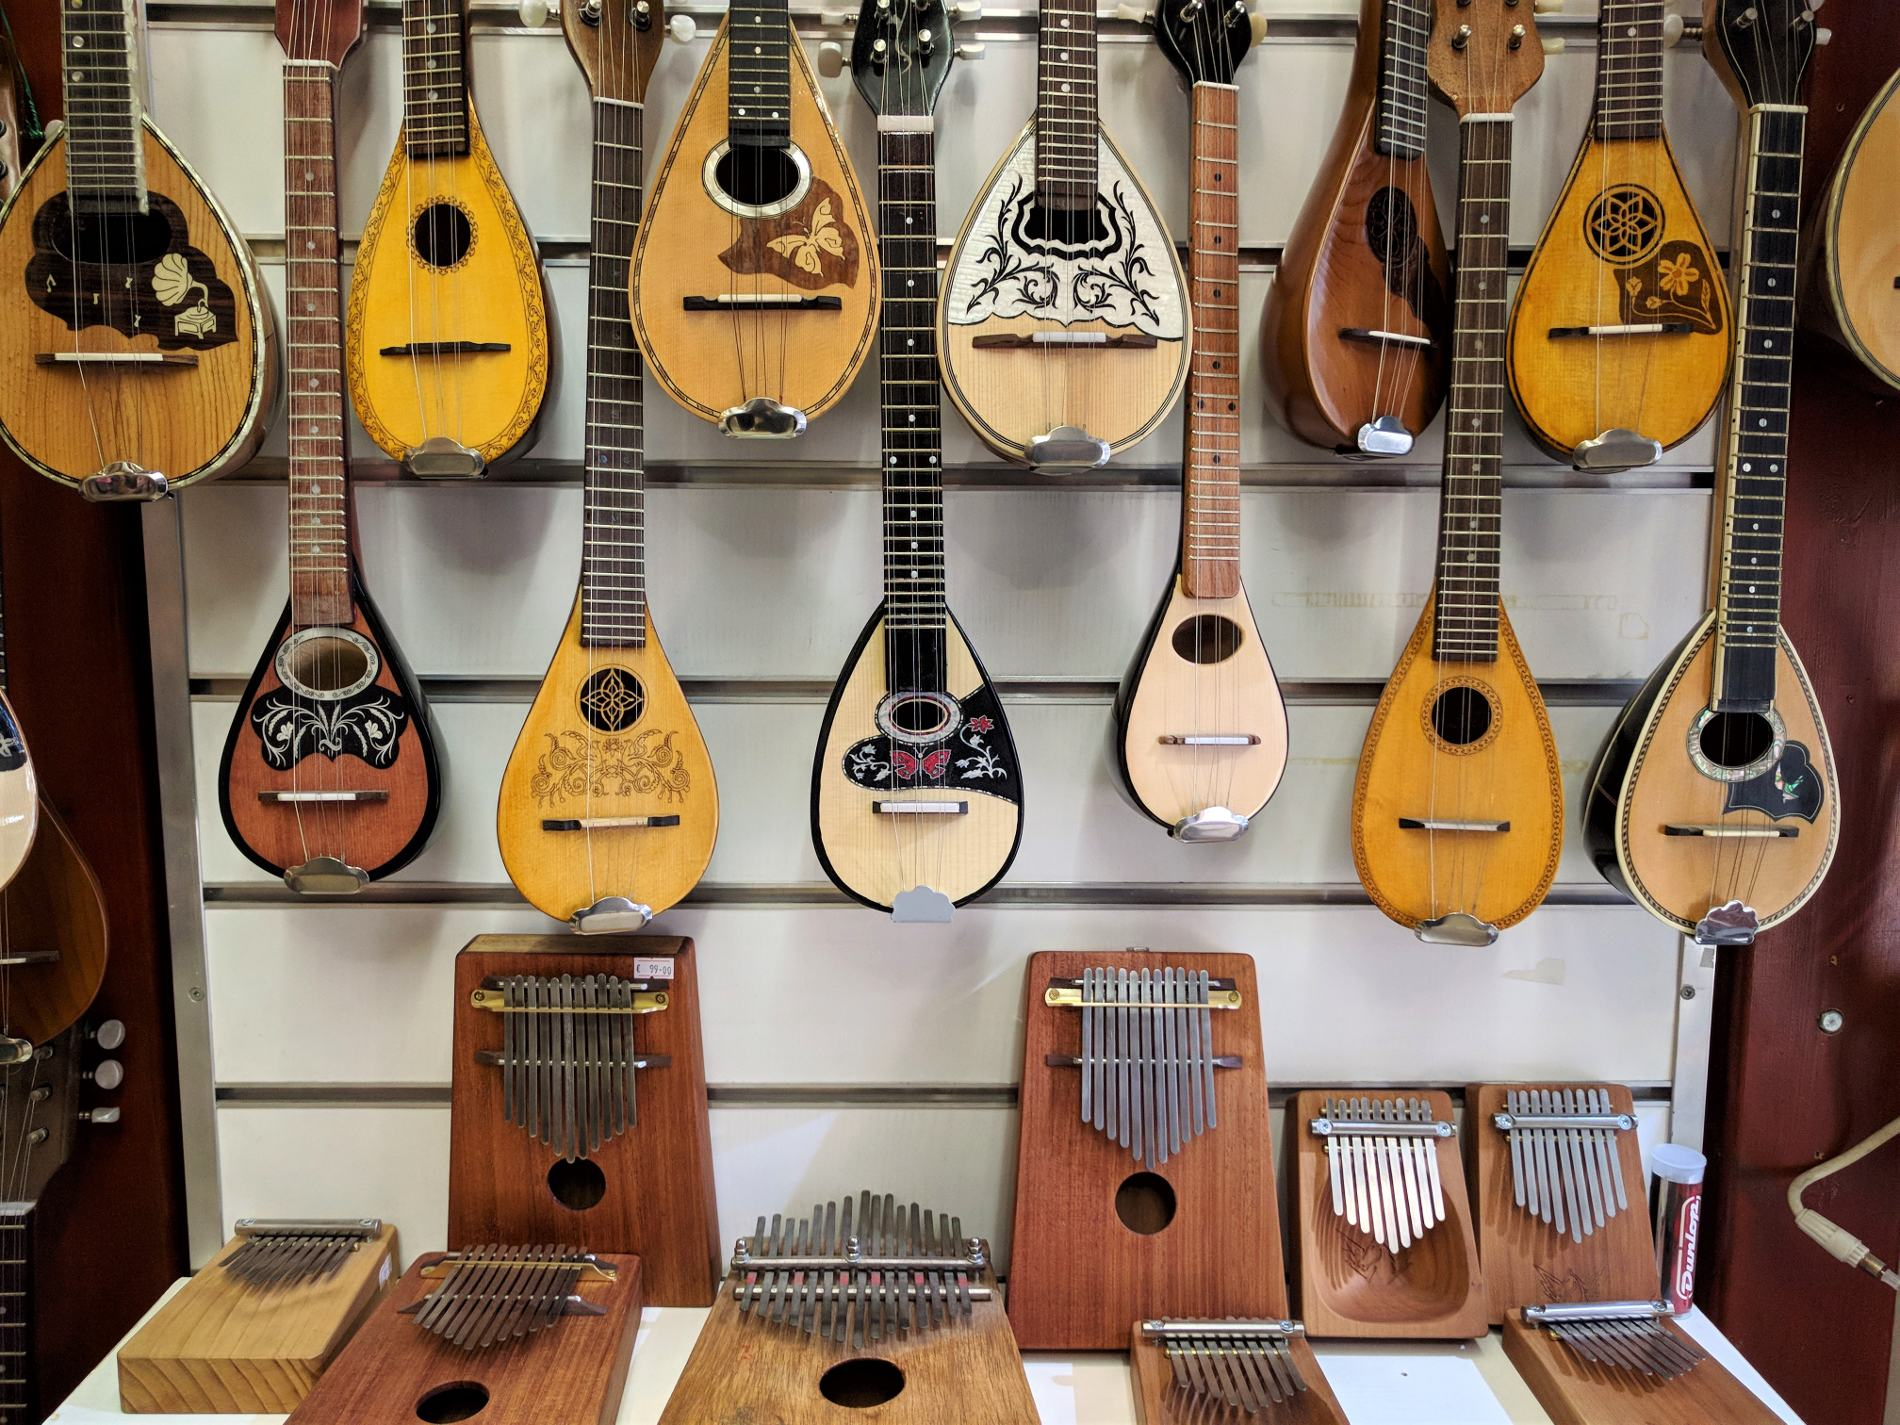 Bouzouki is one of the most original souvenirs you can buy from Greece.